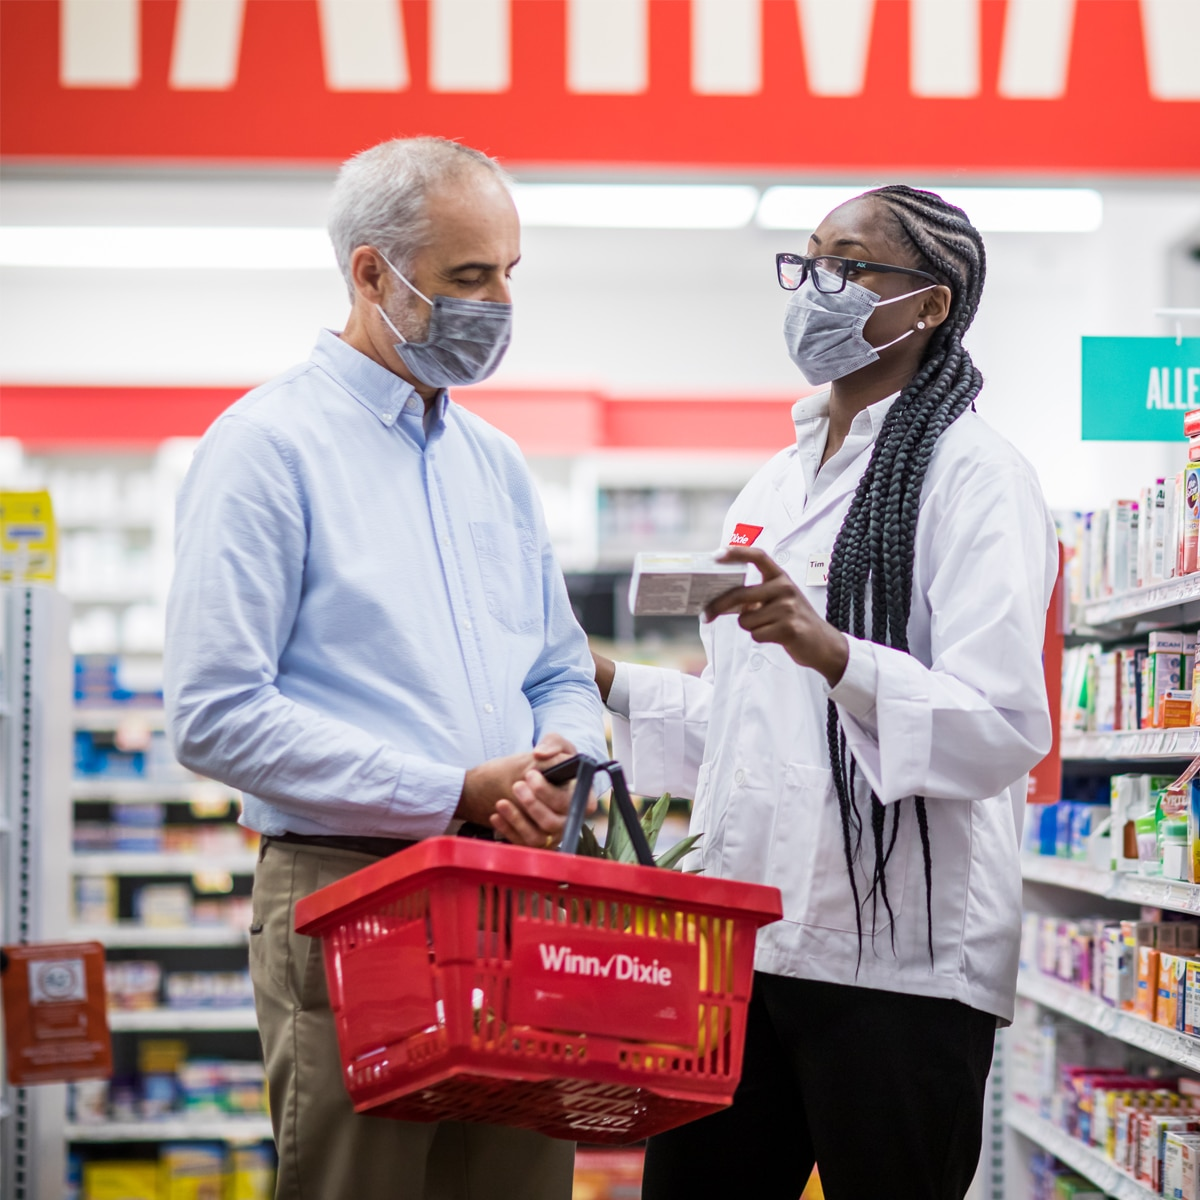 Winn-Dixie | Pharmacy